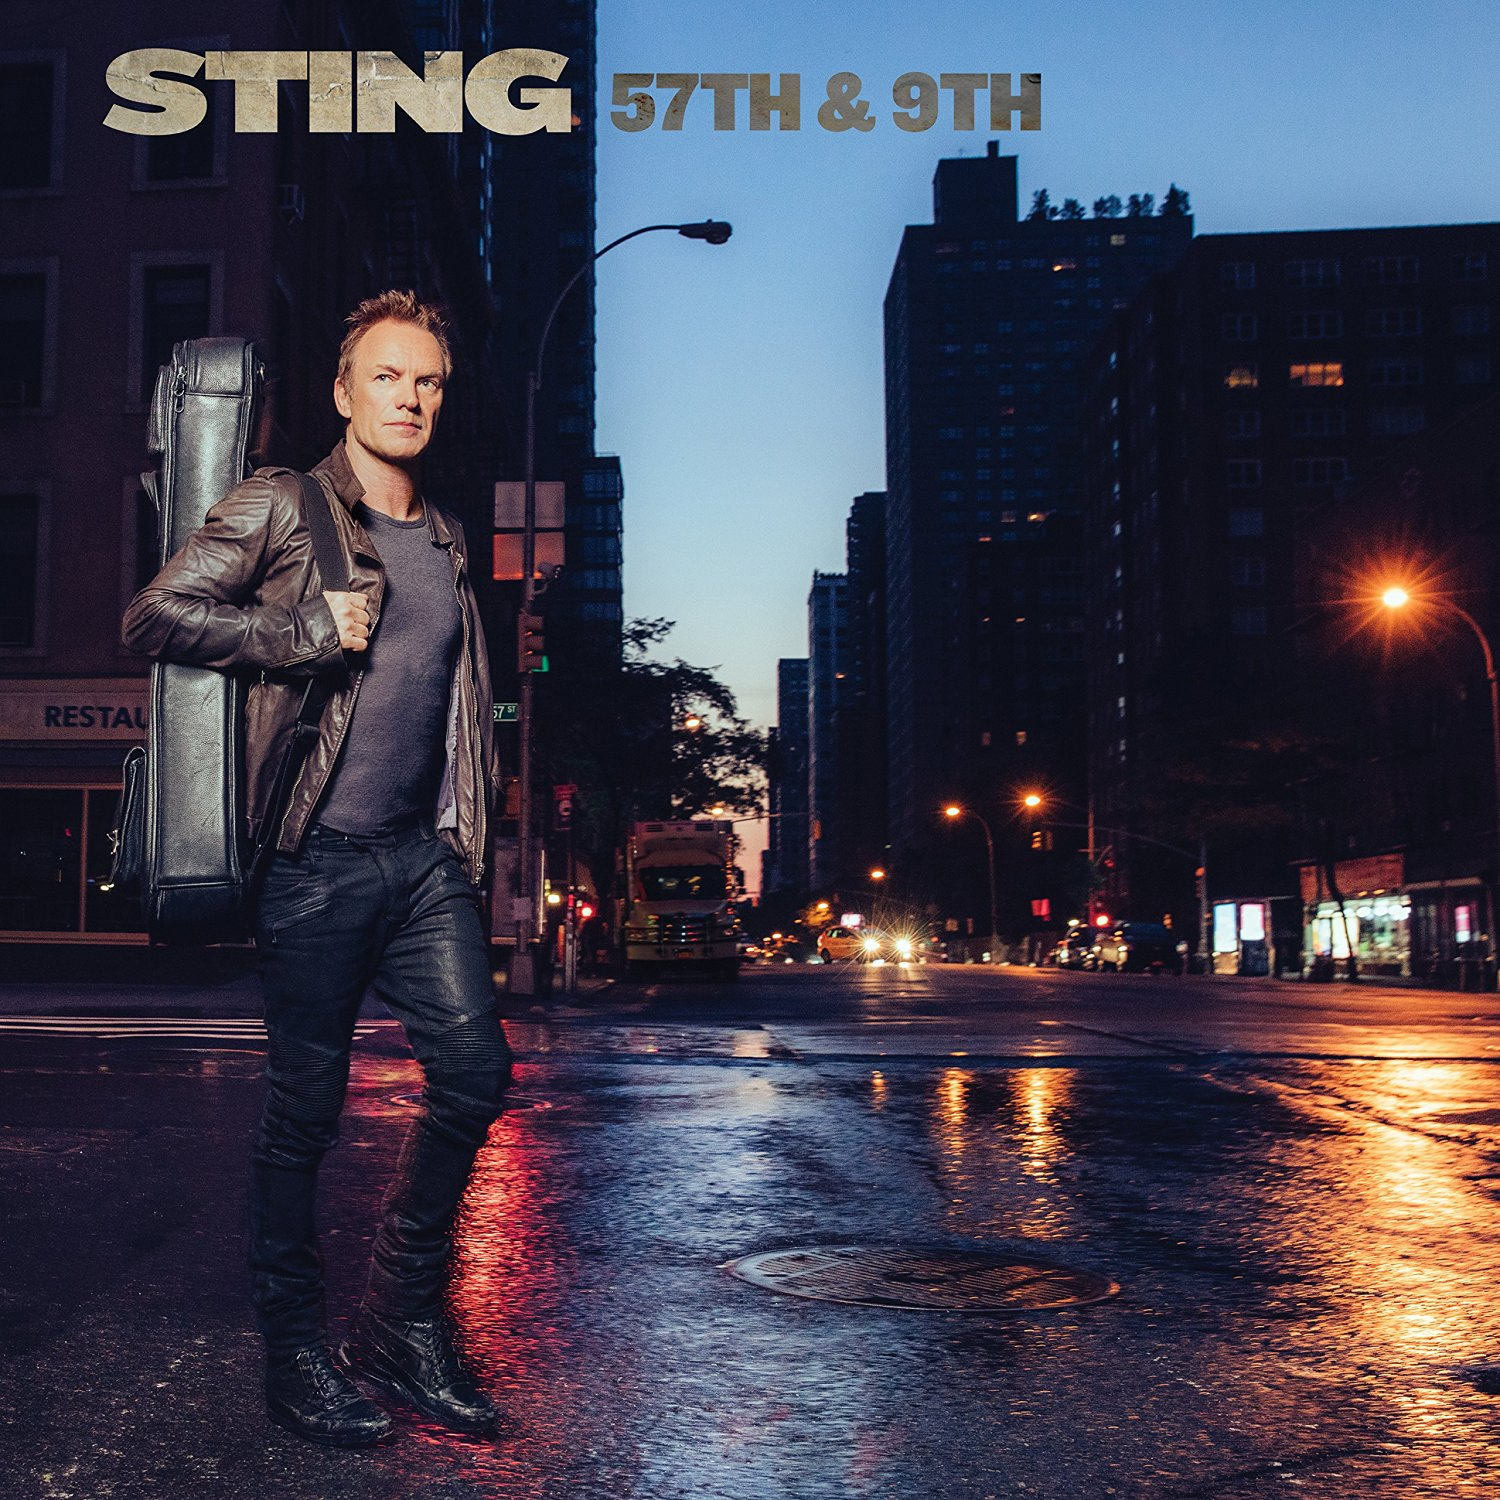 Track Review: Sting, 'I Can't Stop Thinking About You'